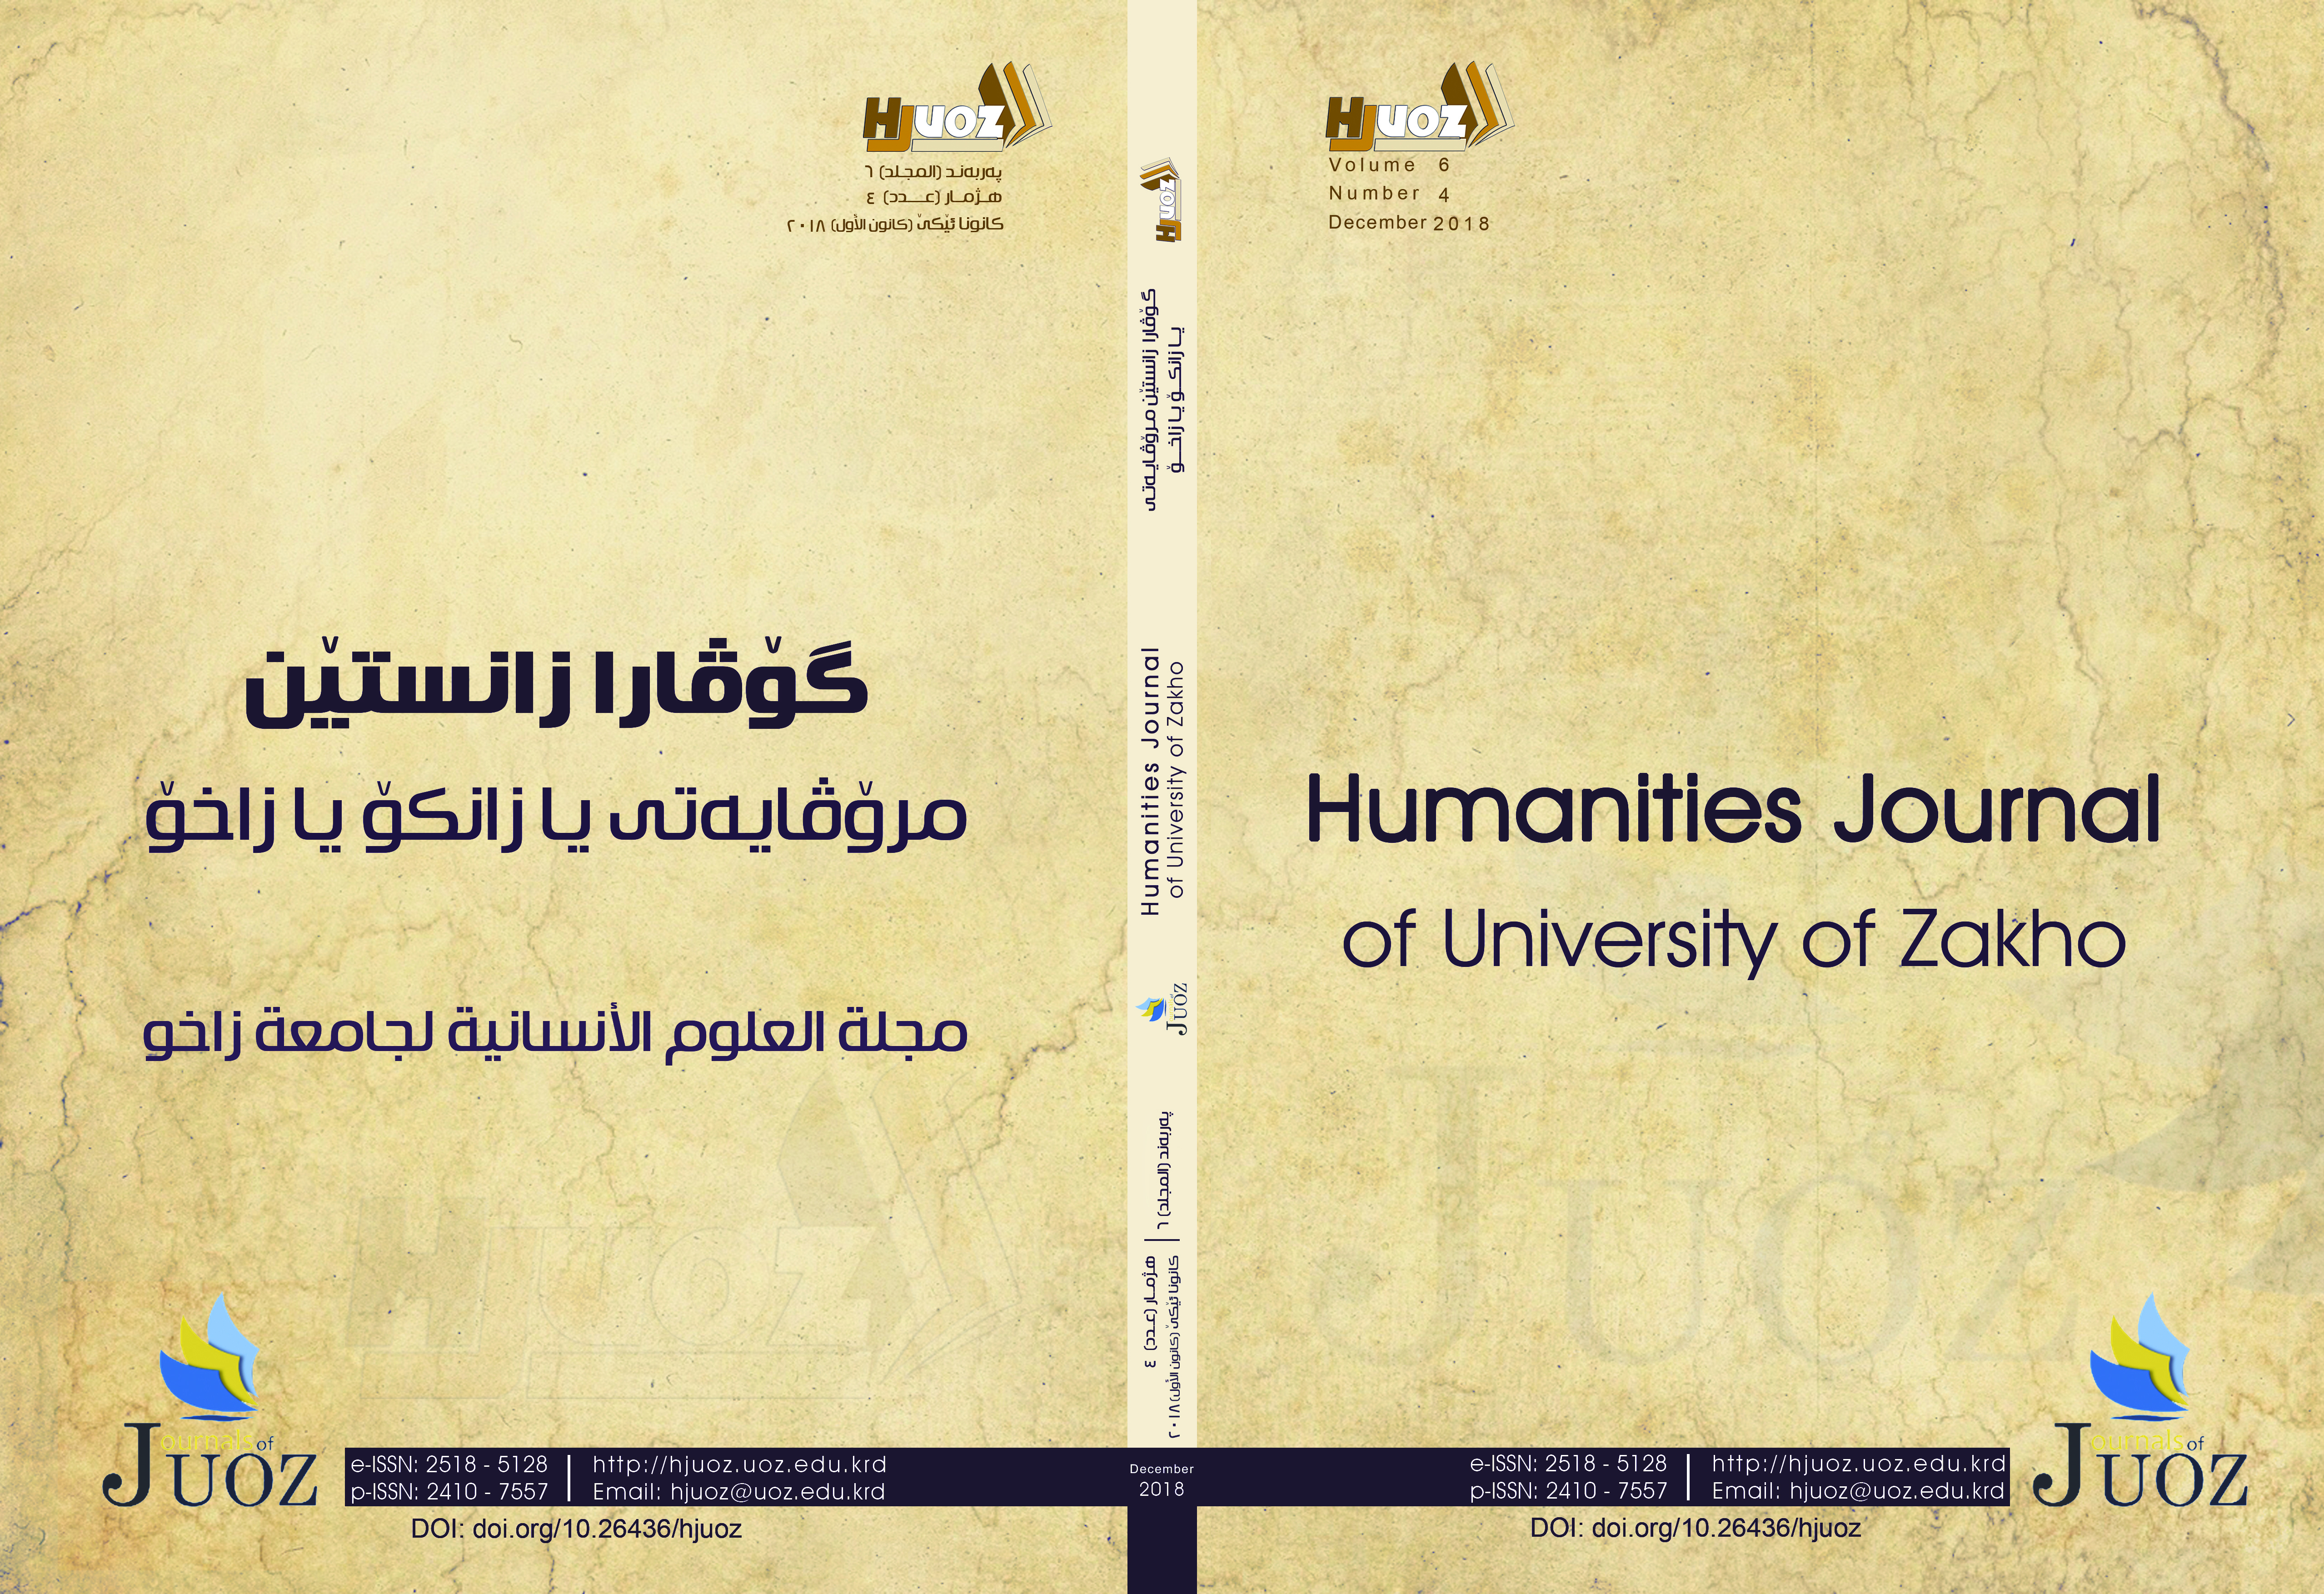 Humanities Journal of University of Zakho (HJUOZ)